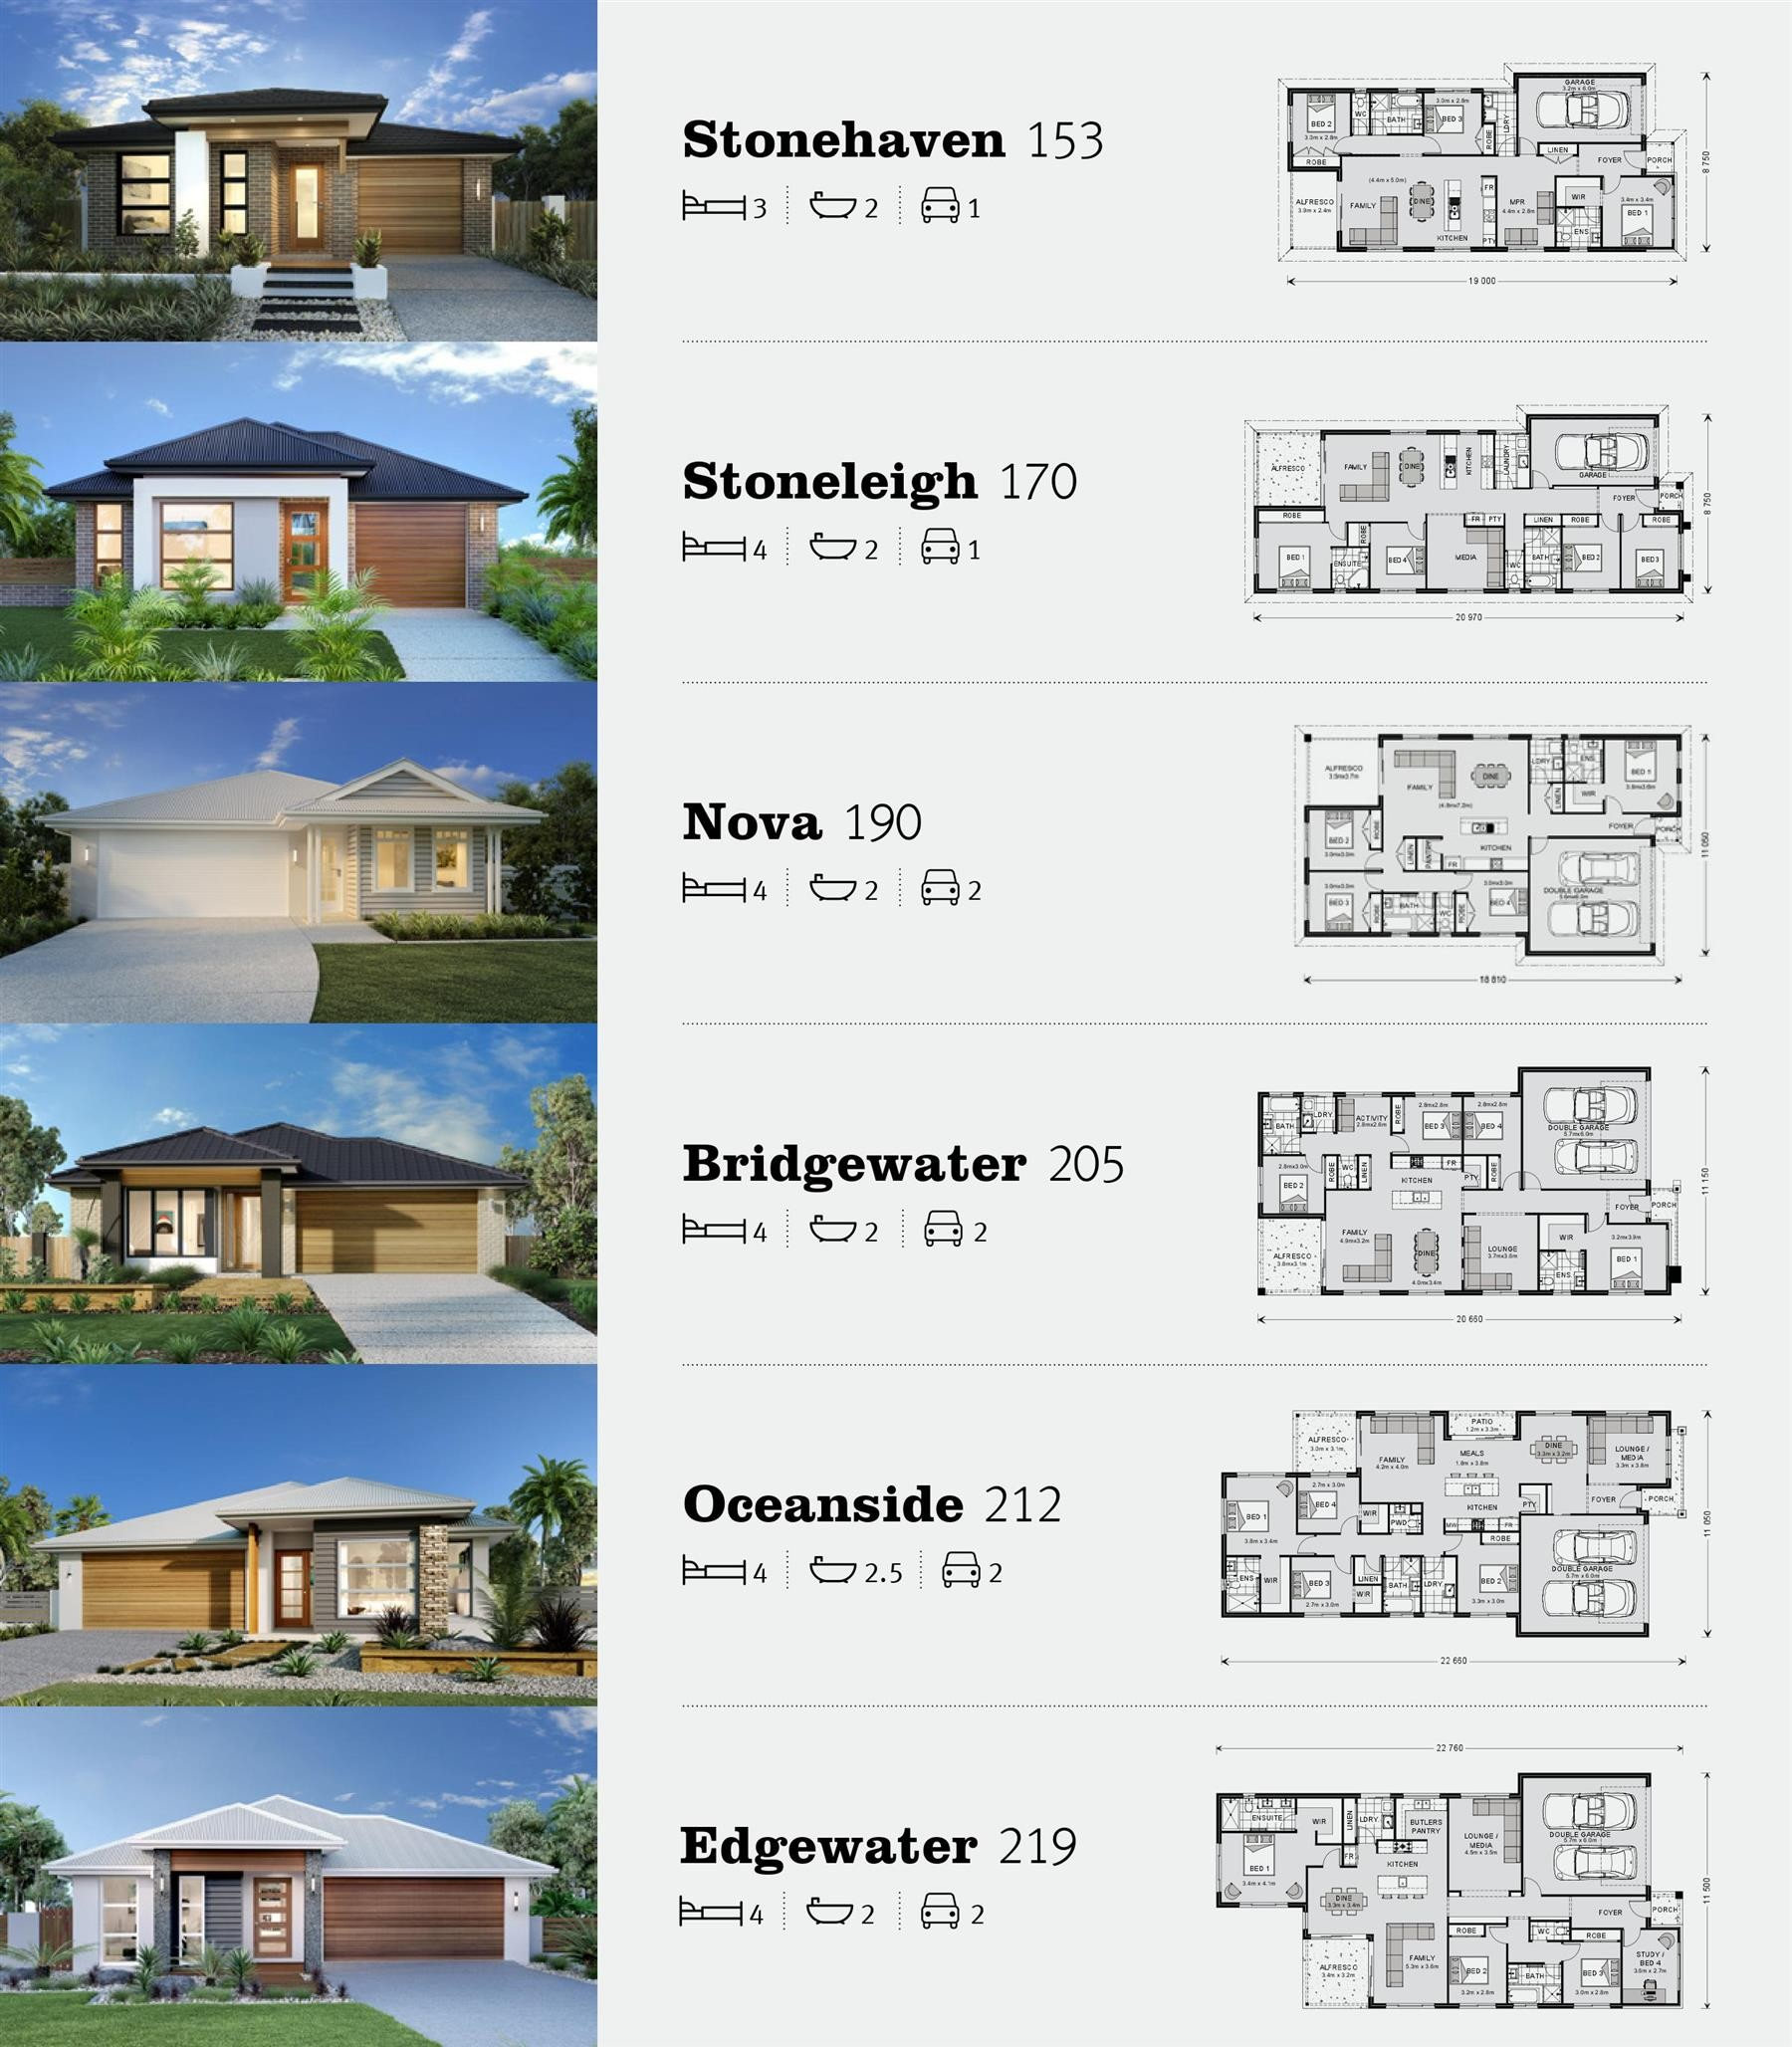 6 new homes from $185,000